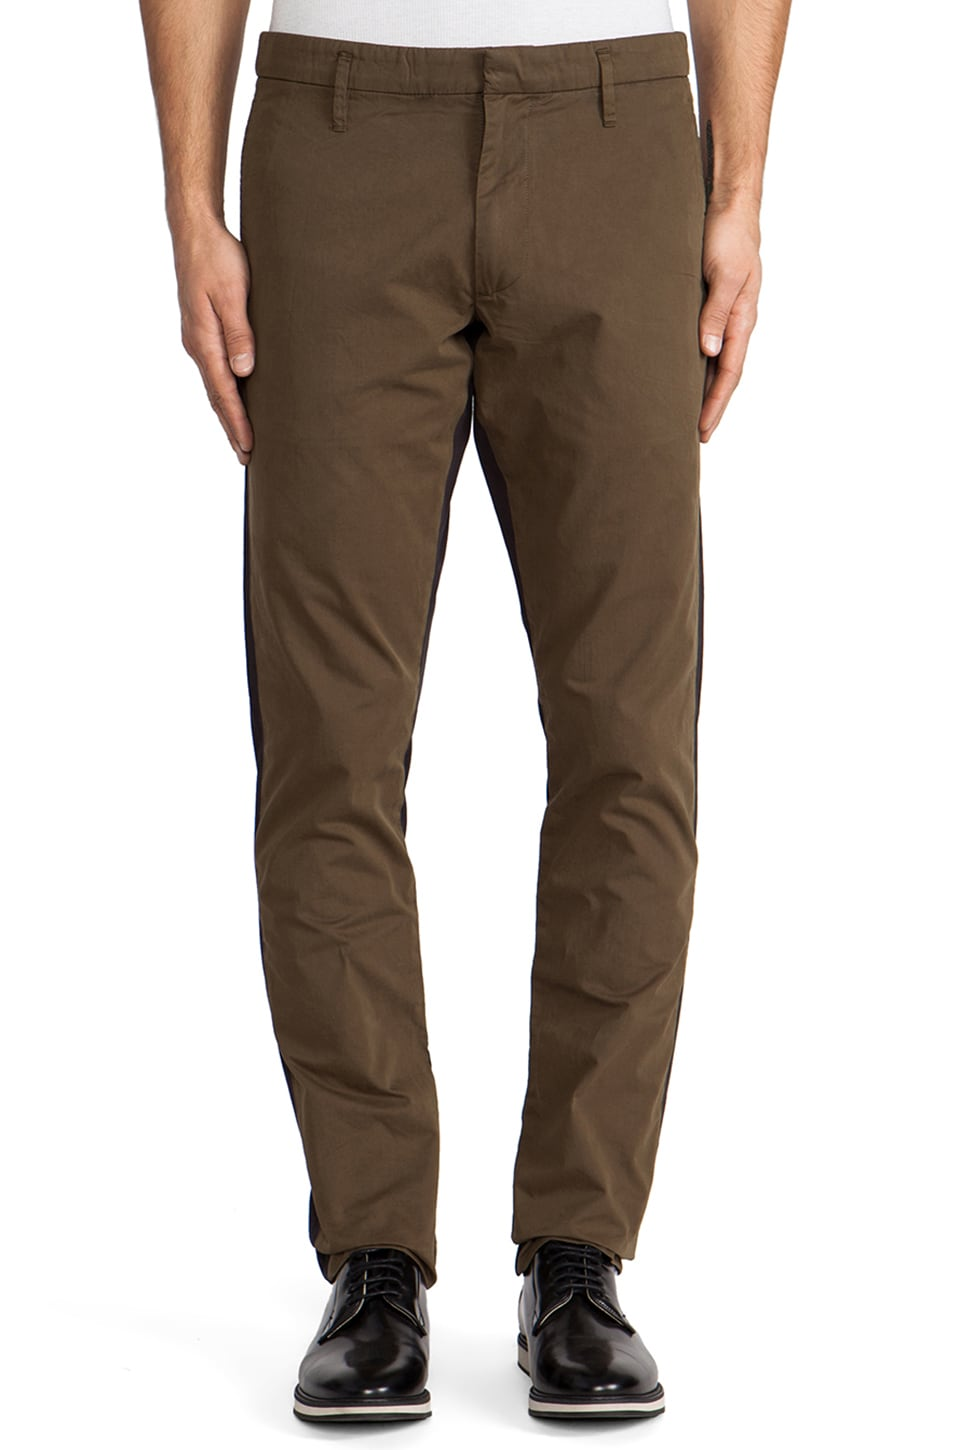 Marc by Marc Jacobs Mariner Cotton Pant in Rainforest Green Multi